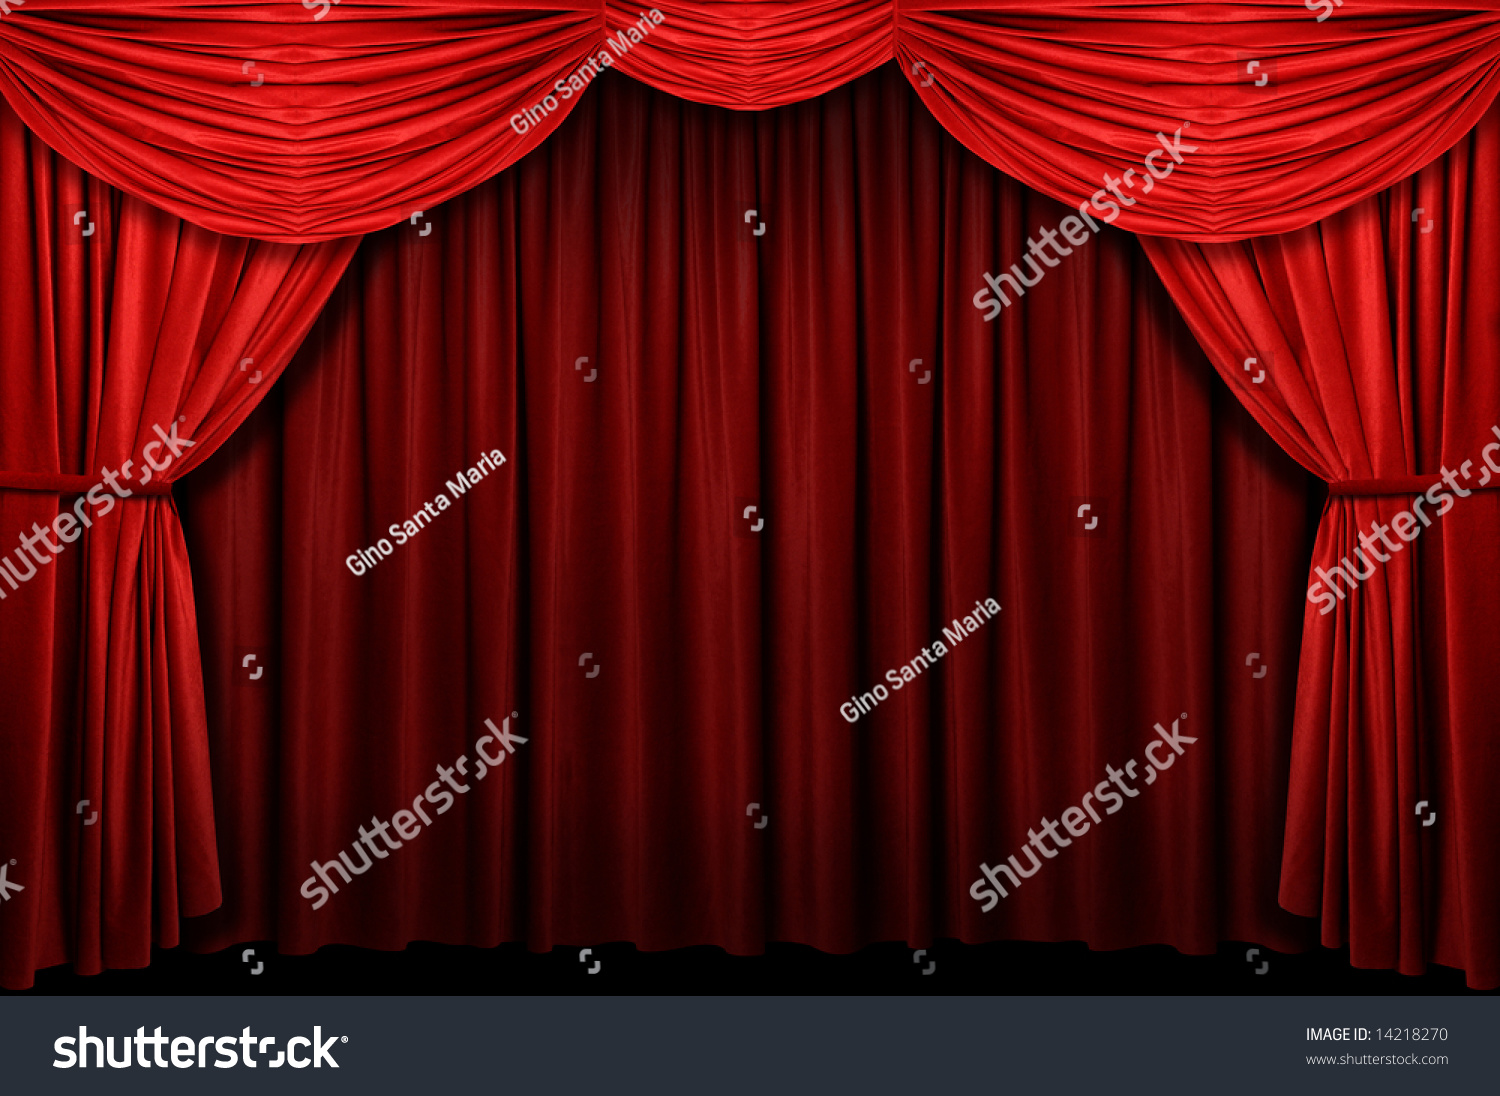 Red stage curtain with lights - Red Stage Curtain With Arch Entrance